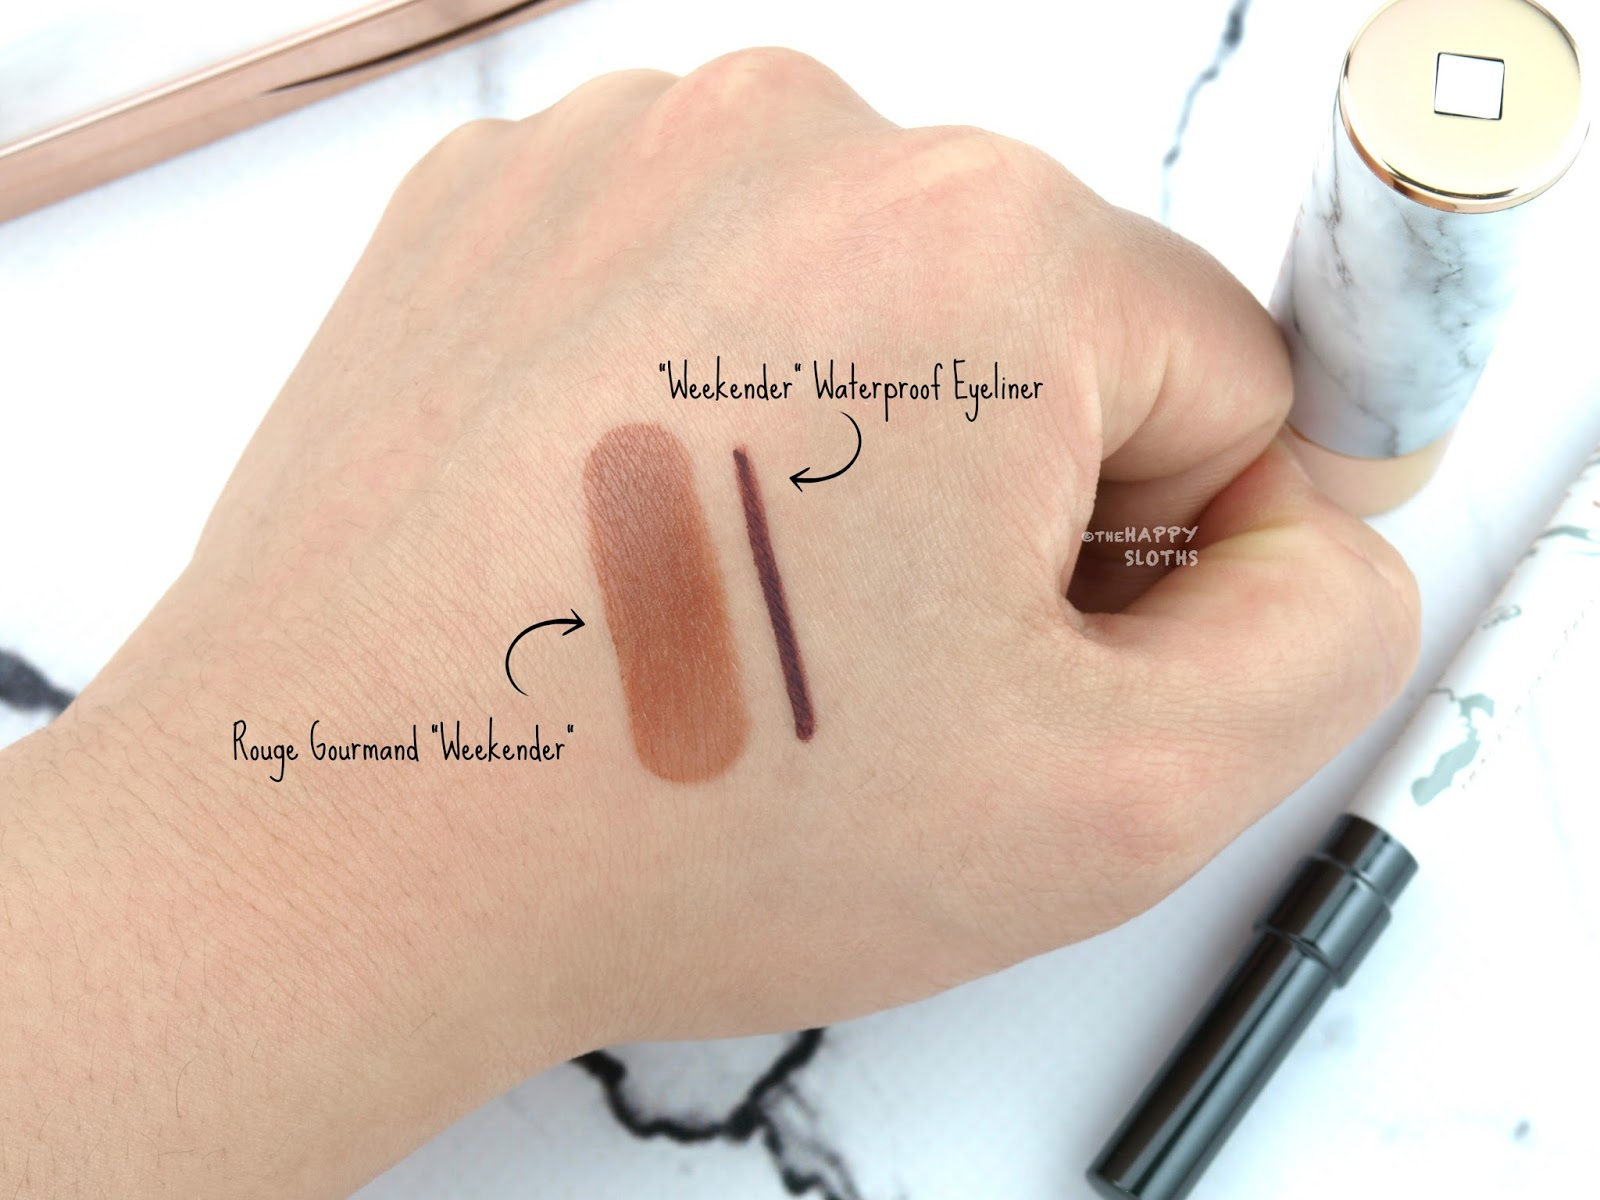 Lise Watier x ELLE Weekender Intense Waterproof Eyeliner & Rouge Gourmand Lipstick: Review and Swatches